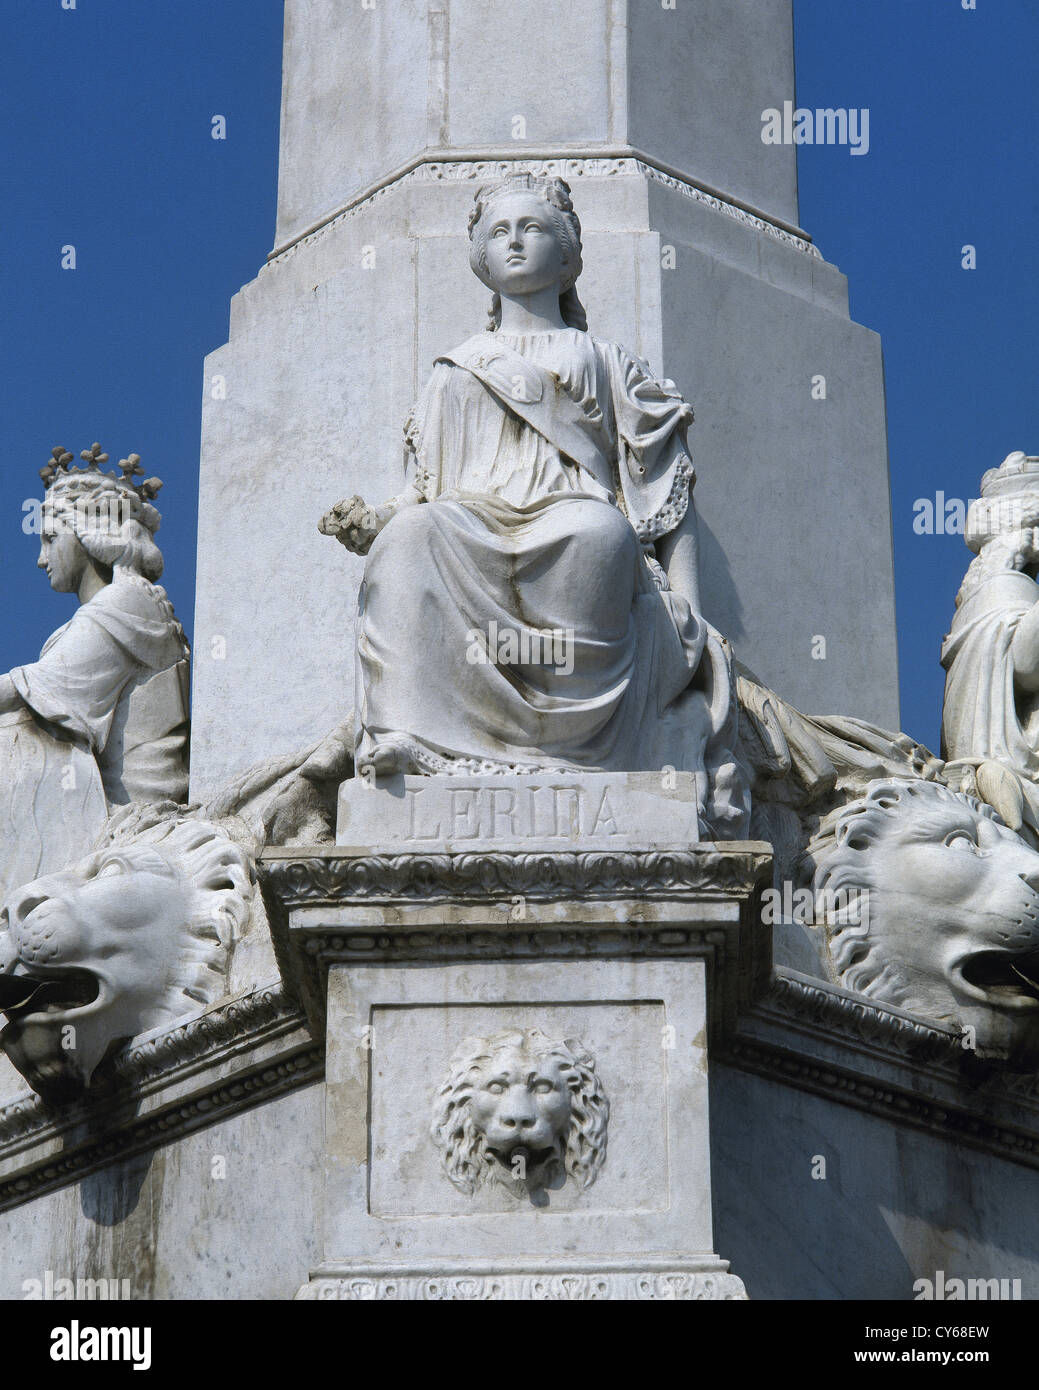 Spain. Catalonia. Barcelona. Fountain of Catalan Genius. Sculptures by Faust Baratta. Detail. - Stock Image